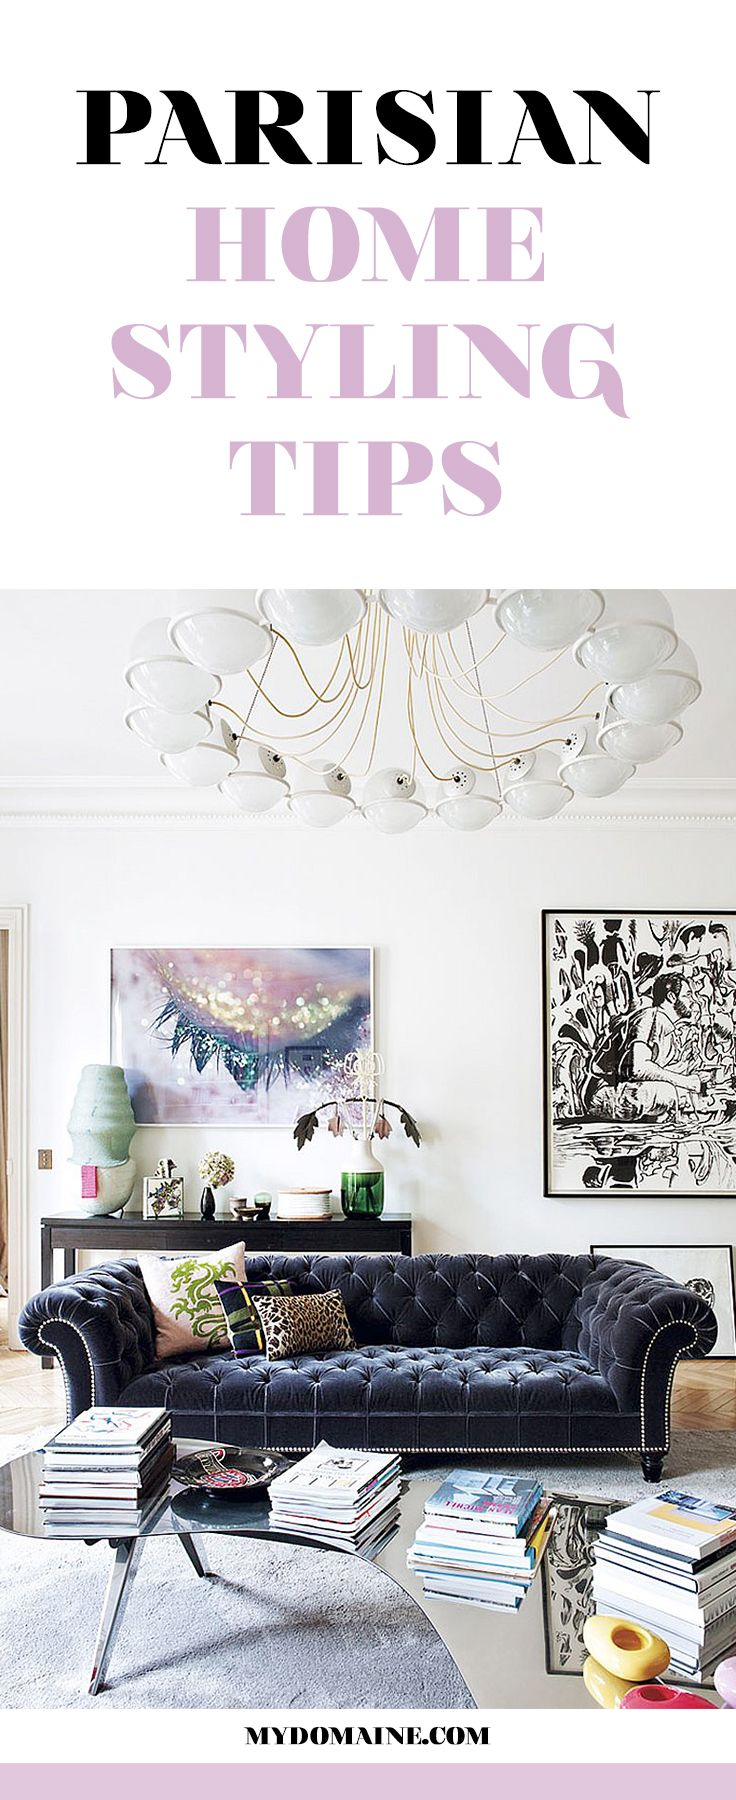 Paris is calling your home's name! Style your space accordingly